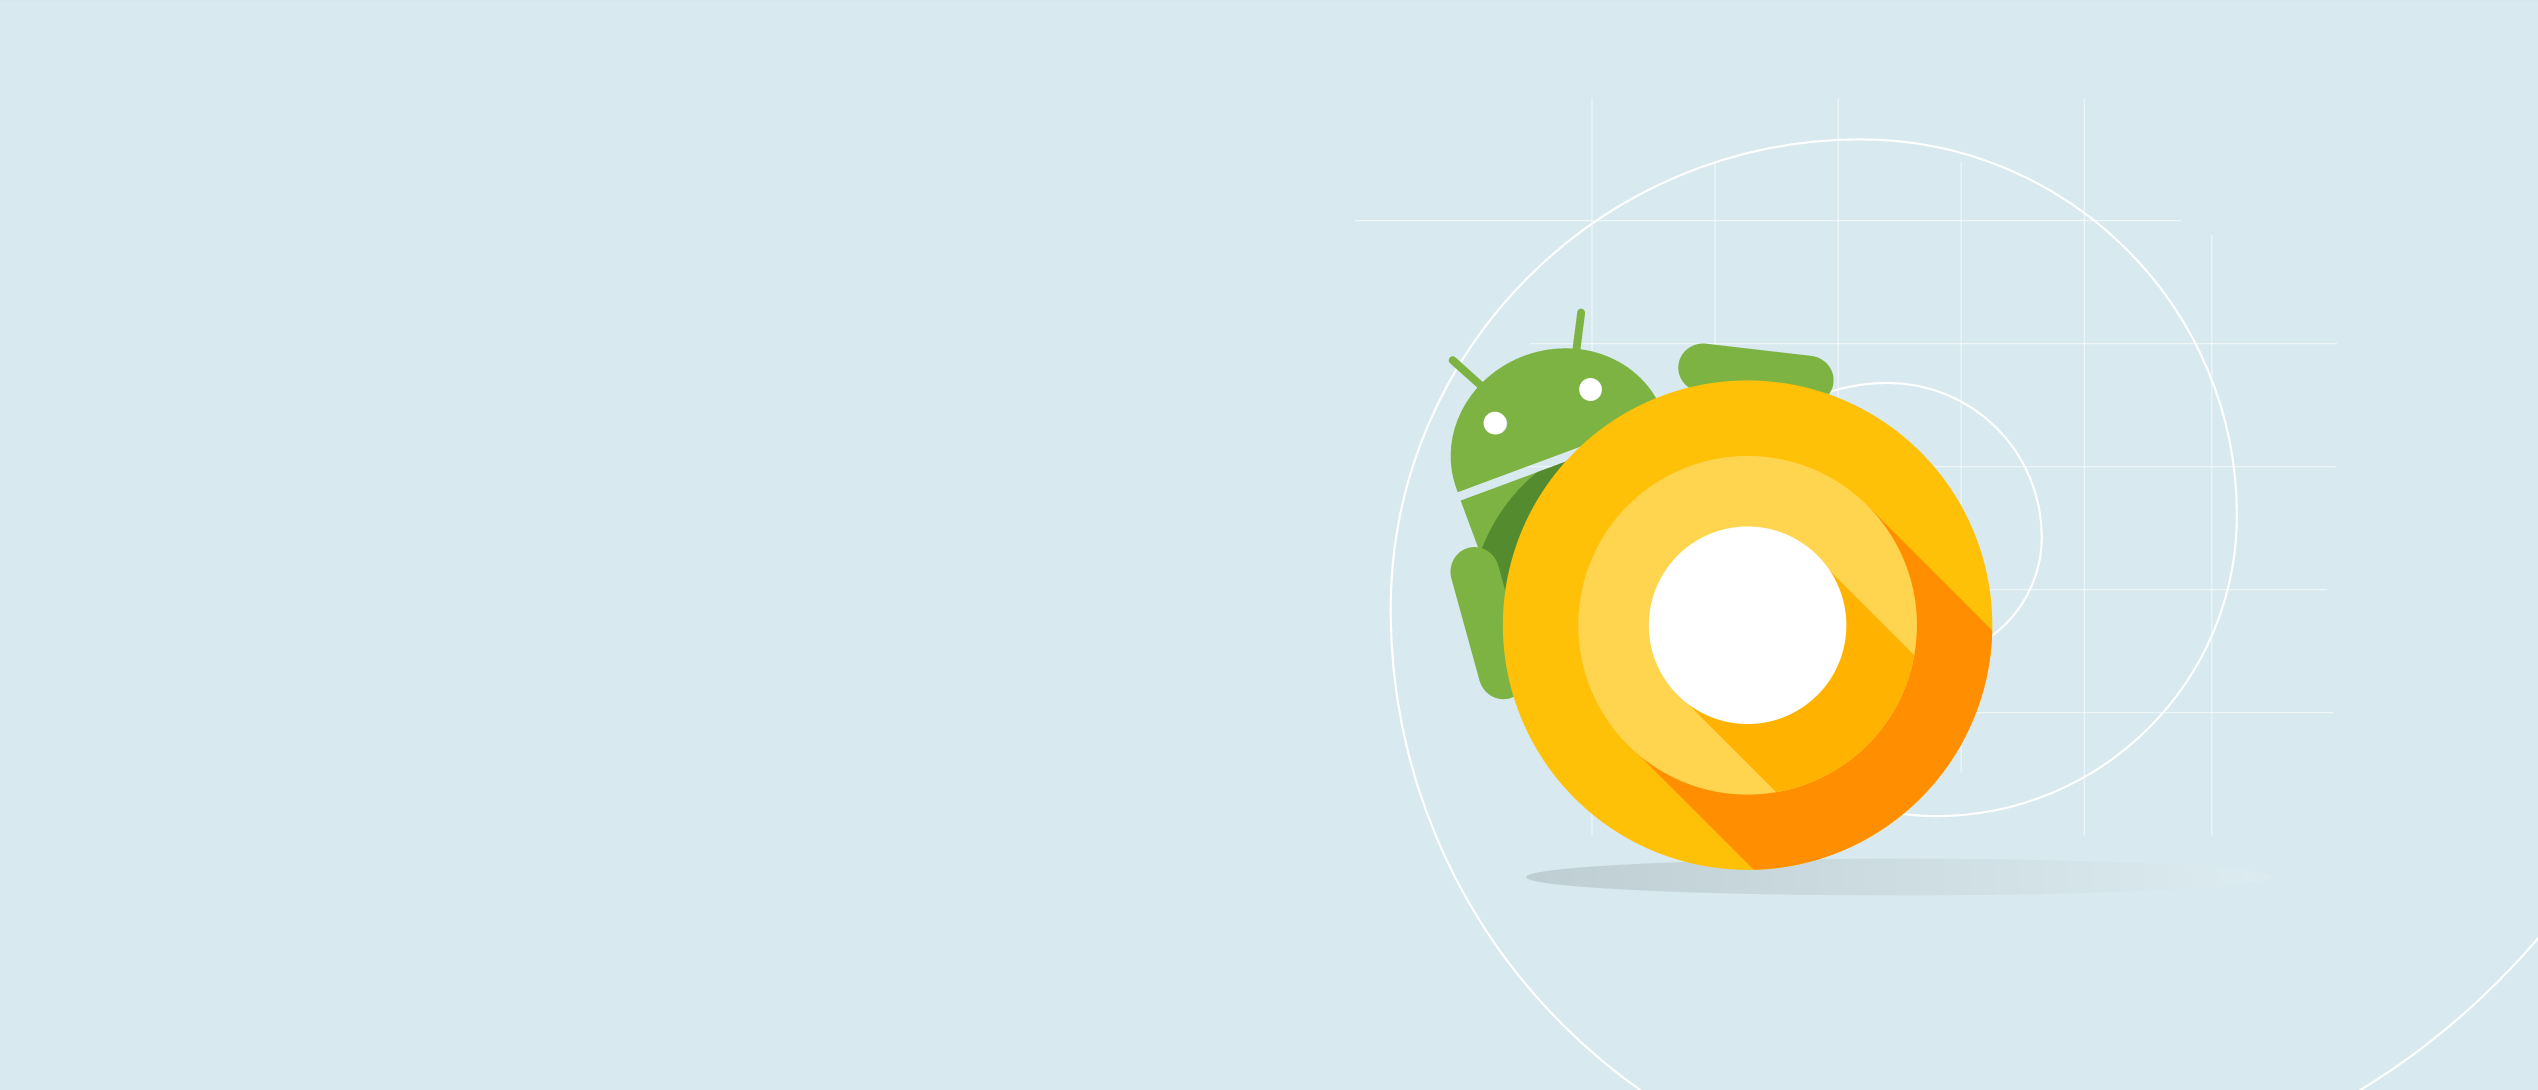 Android O Developer Preview Teardown, For The Developers!